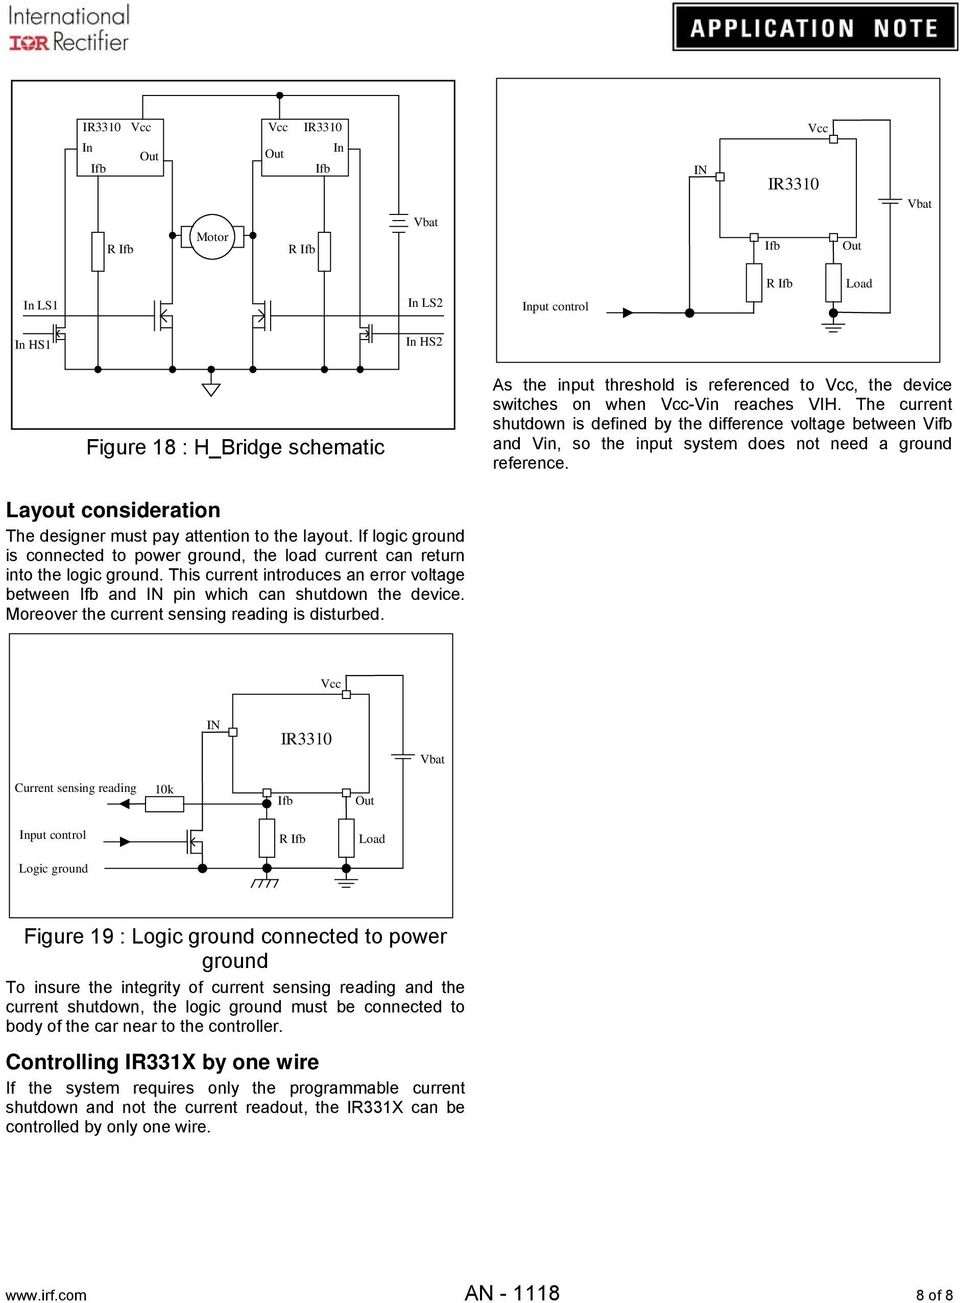 Application Note An Pdf Voltage Regulator With Shutdown Digital Circuit Diagram If Logic Ground Is Connected To Power The Load Current Can Return Into